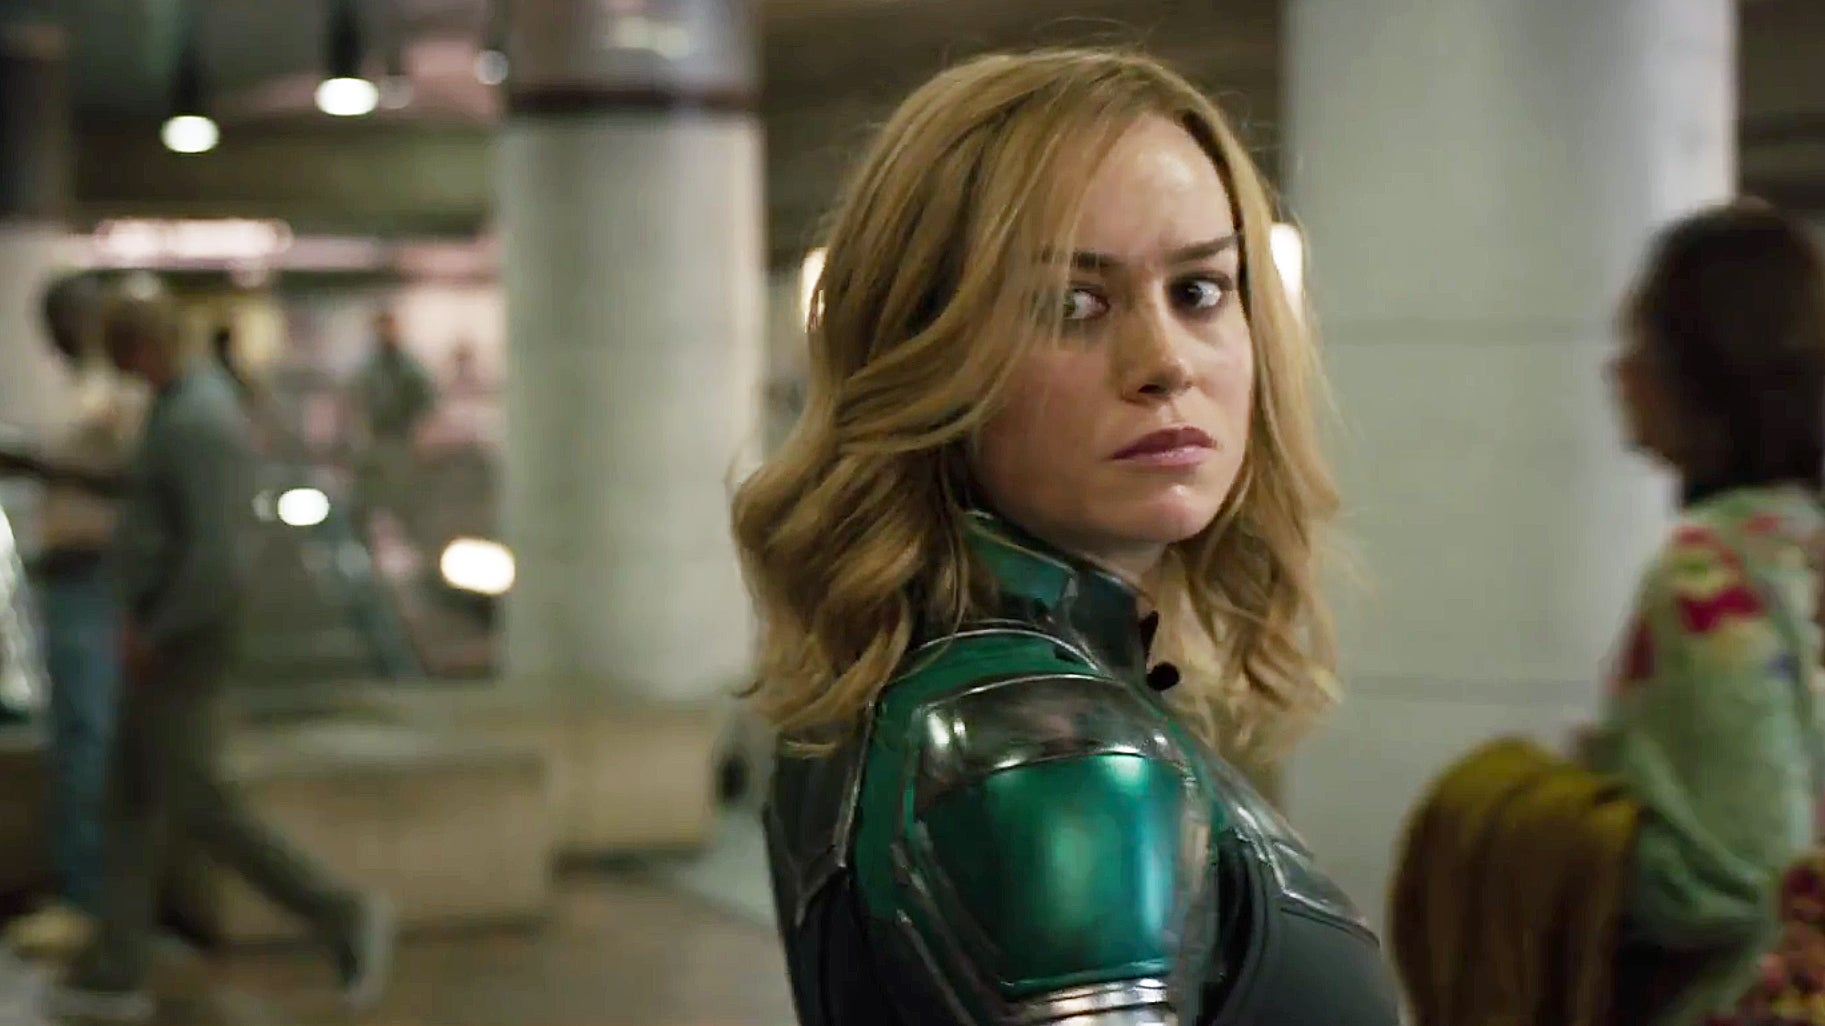 What Does Brie Larson Say To Avengers: Endgame Spoilers? 'Not Today'